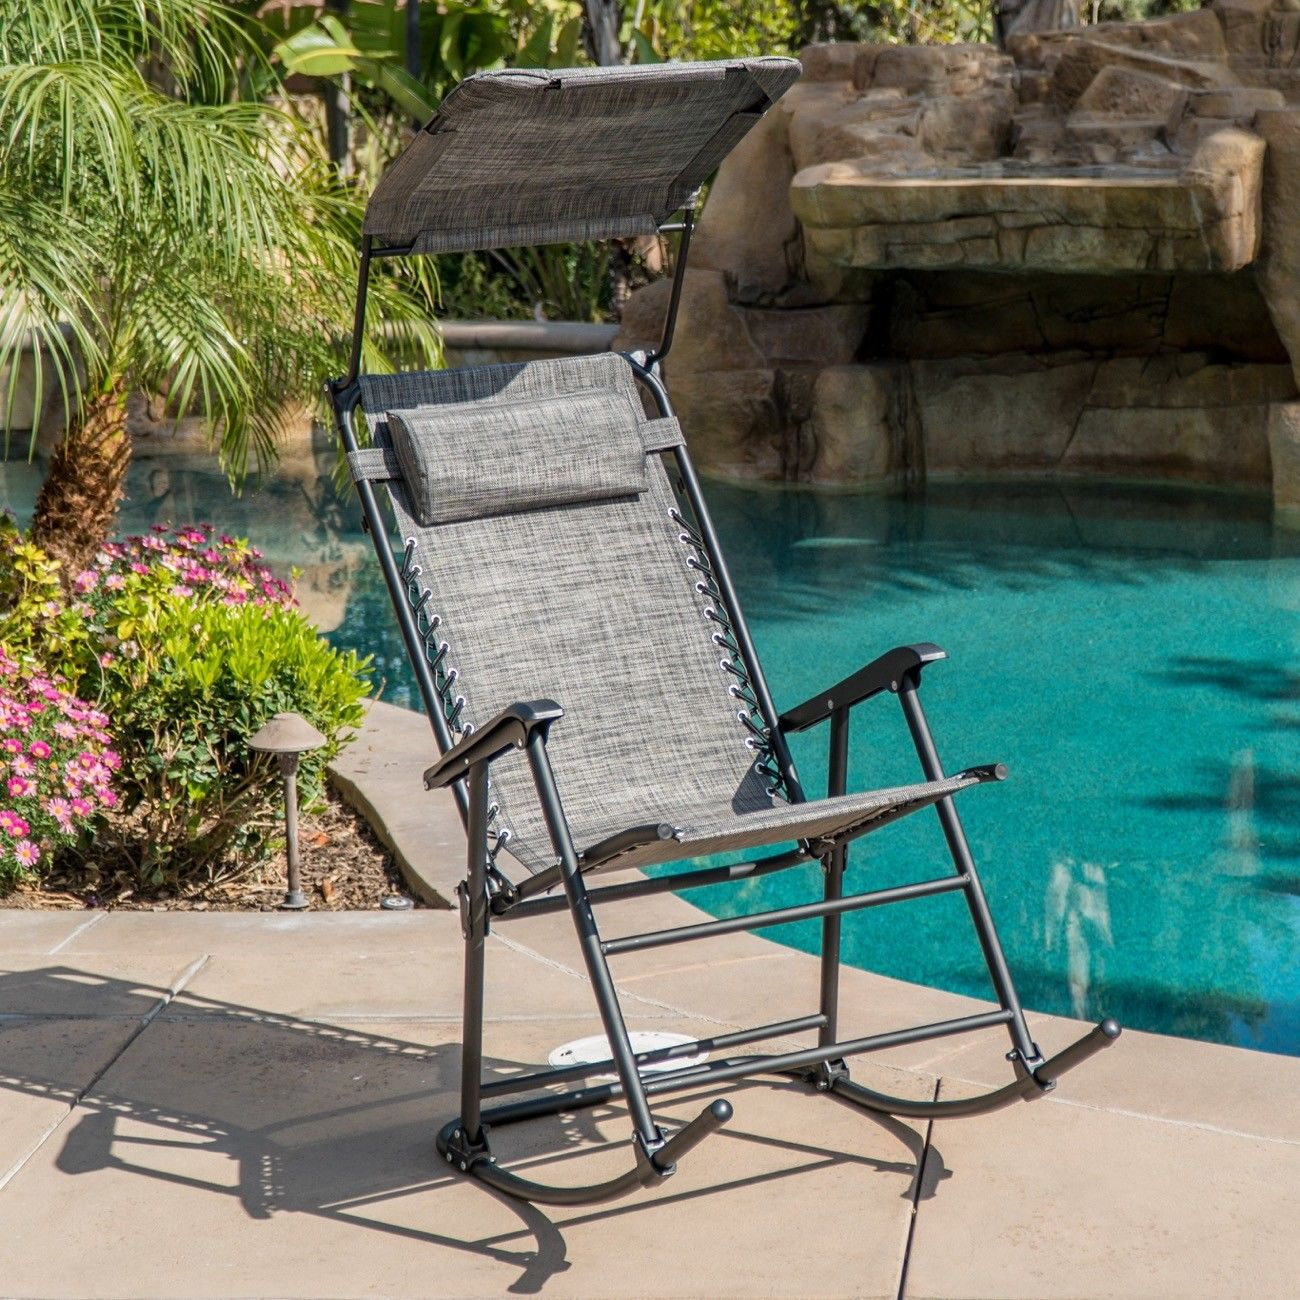 GHP 330-Lbs Weight Capacity Dark Grey Steel Frame Rocking Chair with Sunshade Canopy